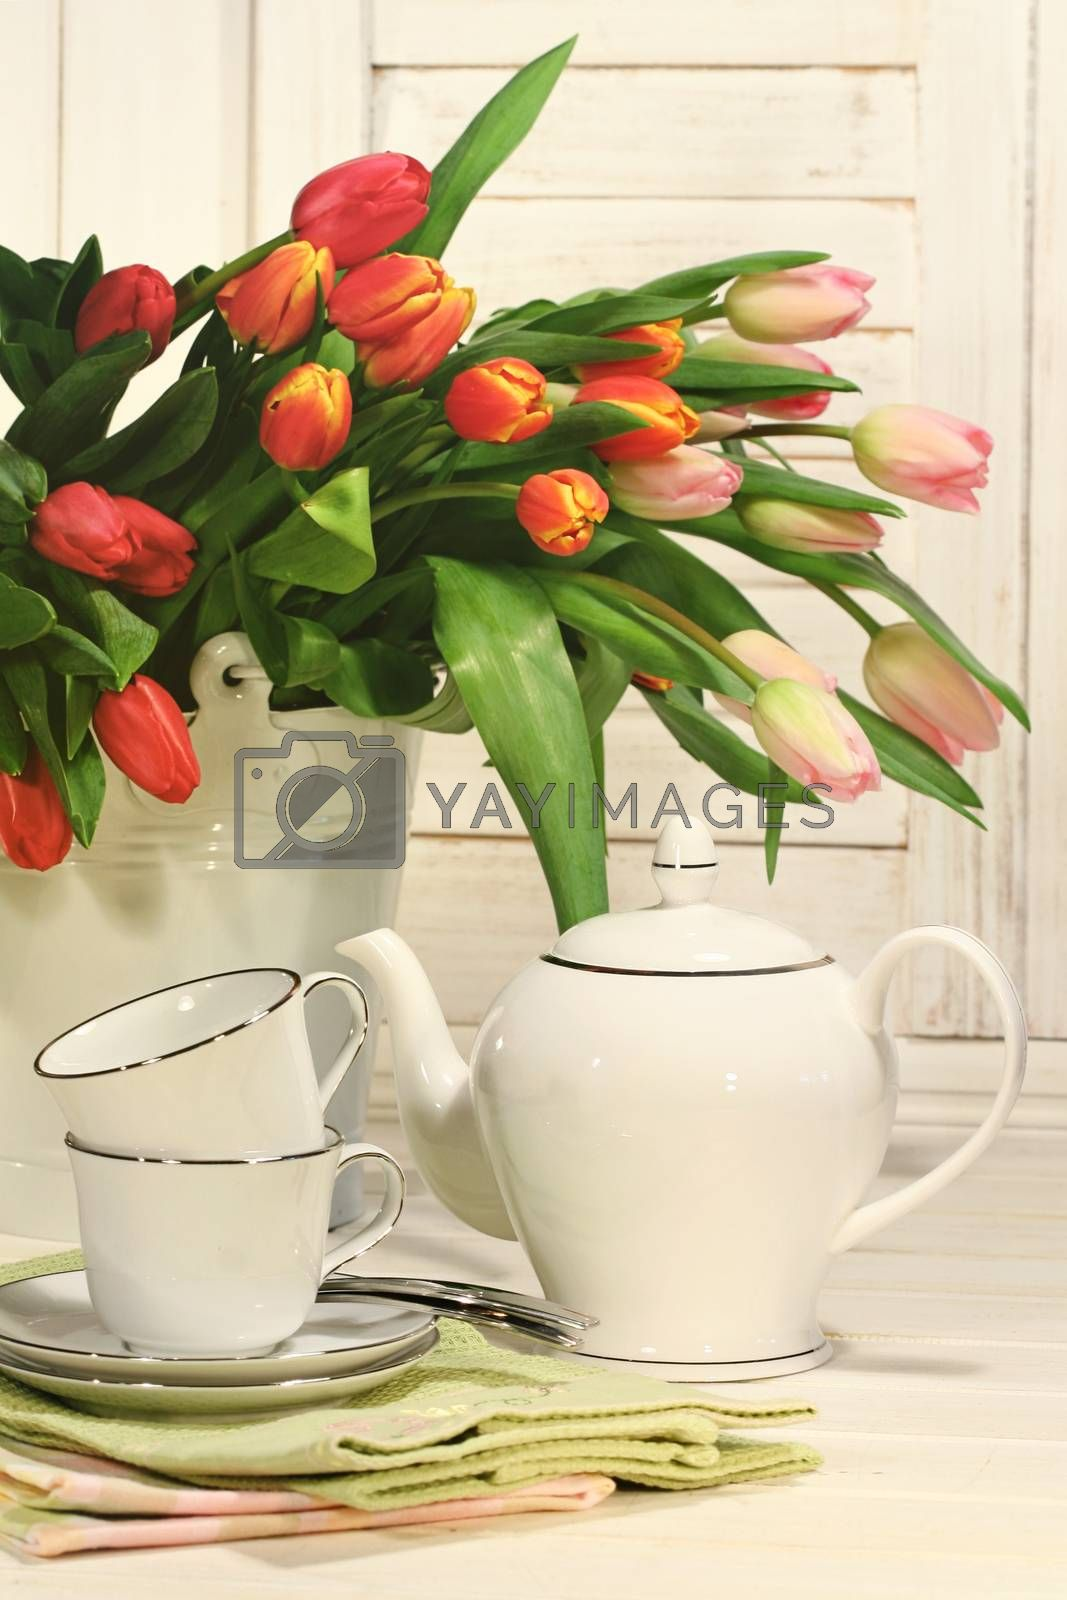 Tea set with tulip flowers for Easter